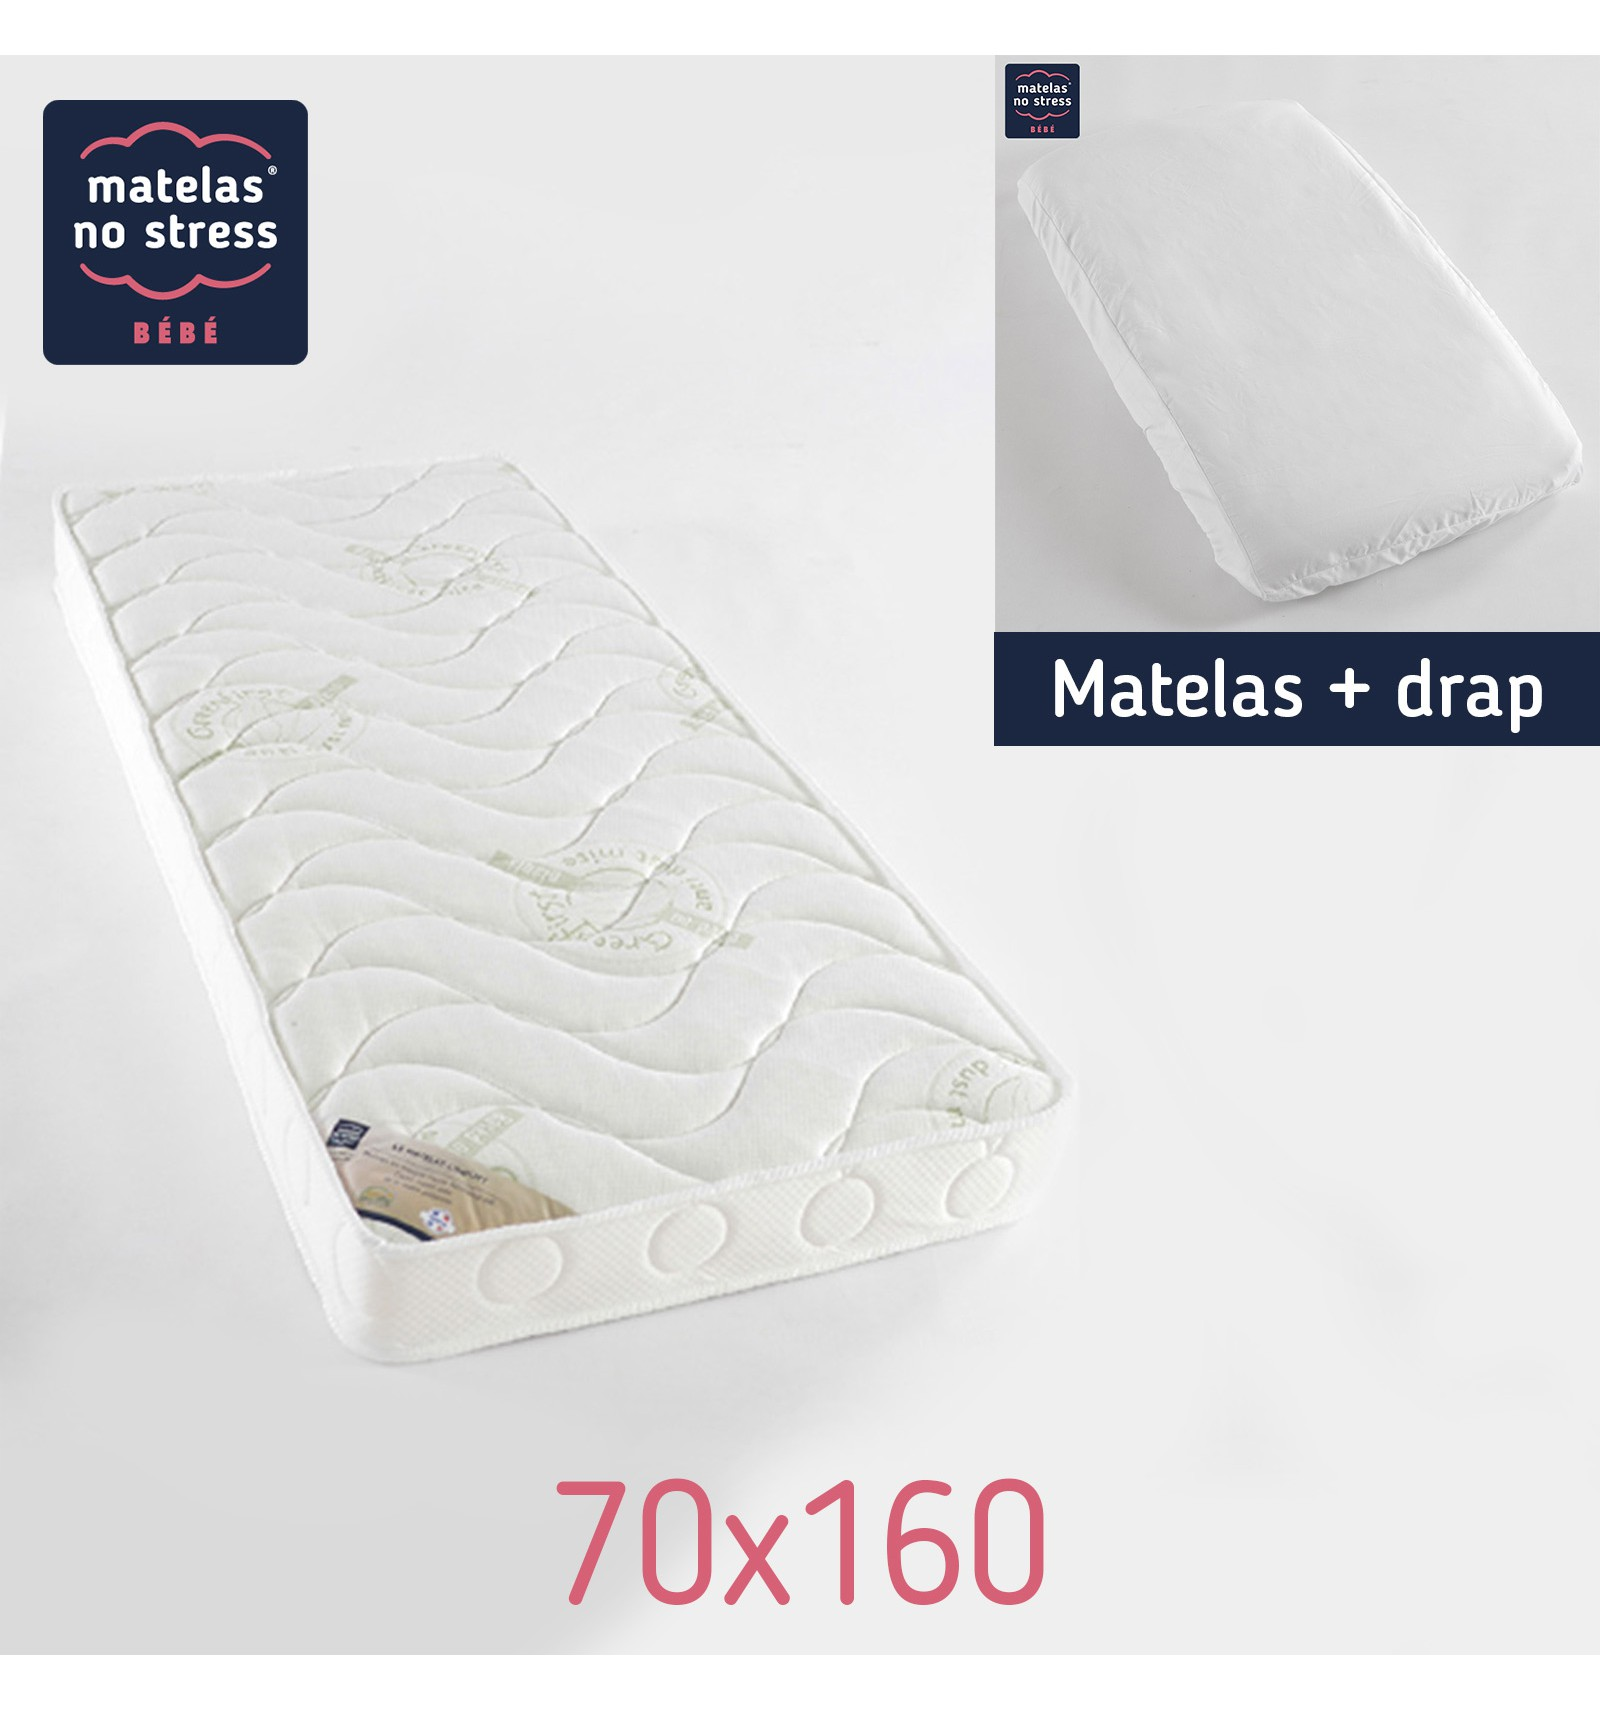 matelas 70x160 confort anti acariens et son drap housse couffin matelas. Black Bedroom Furniture Sets. Home Design Ideas